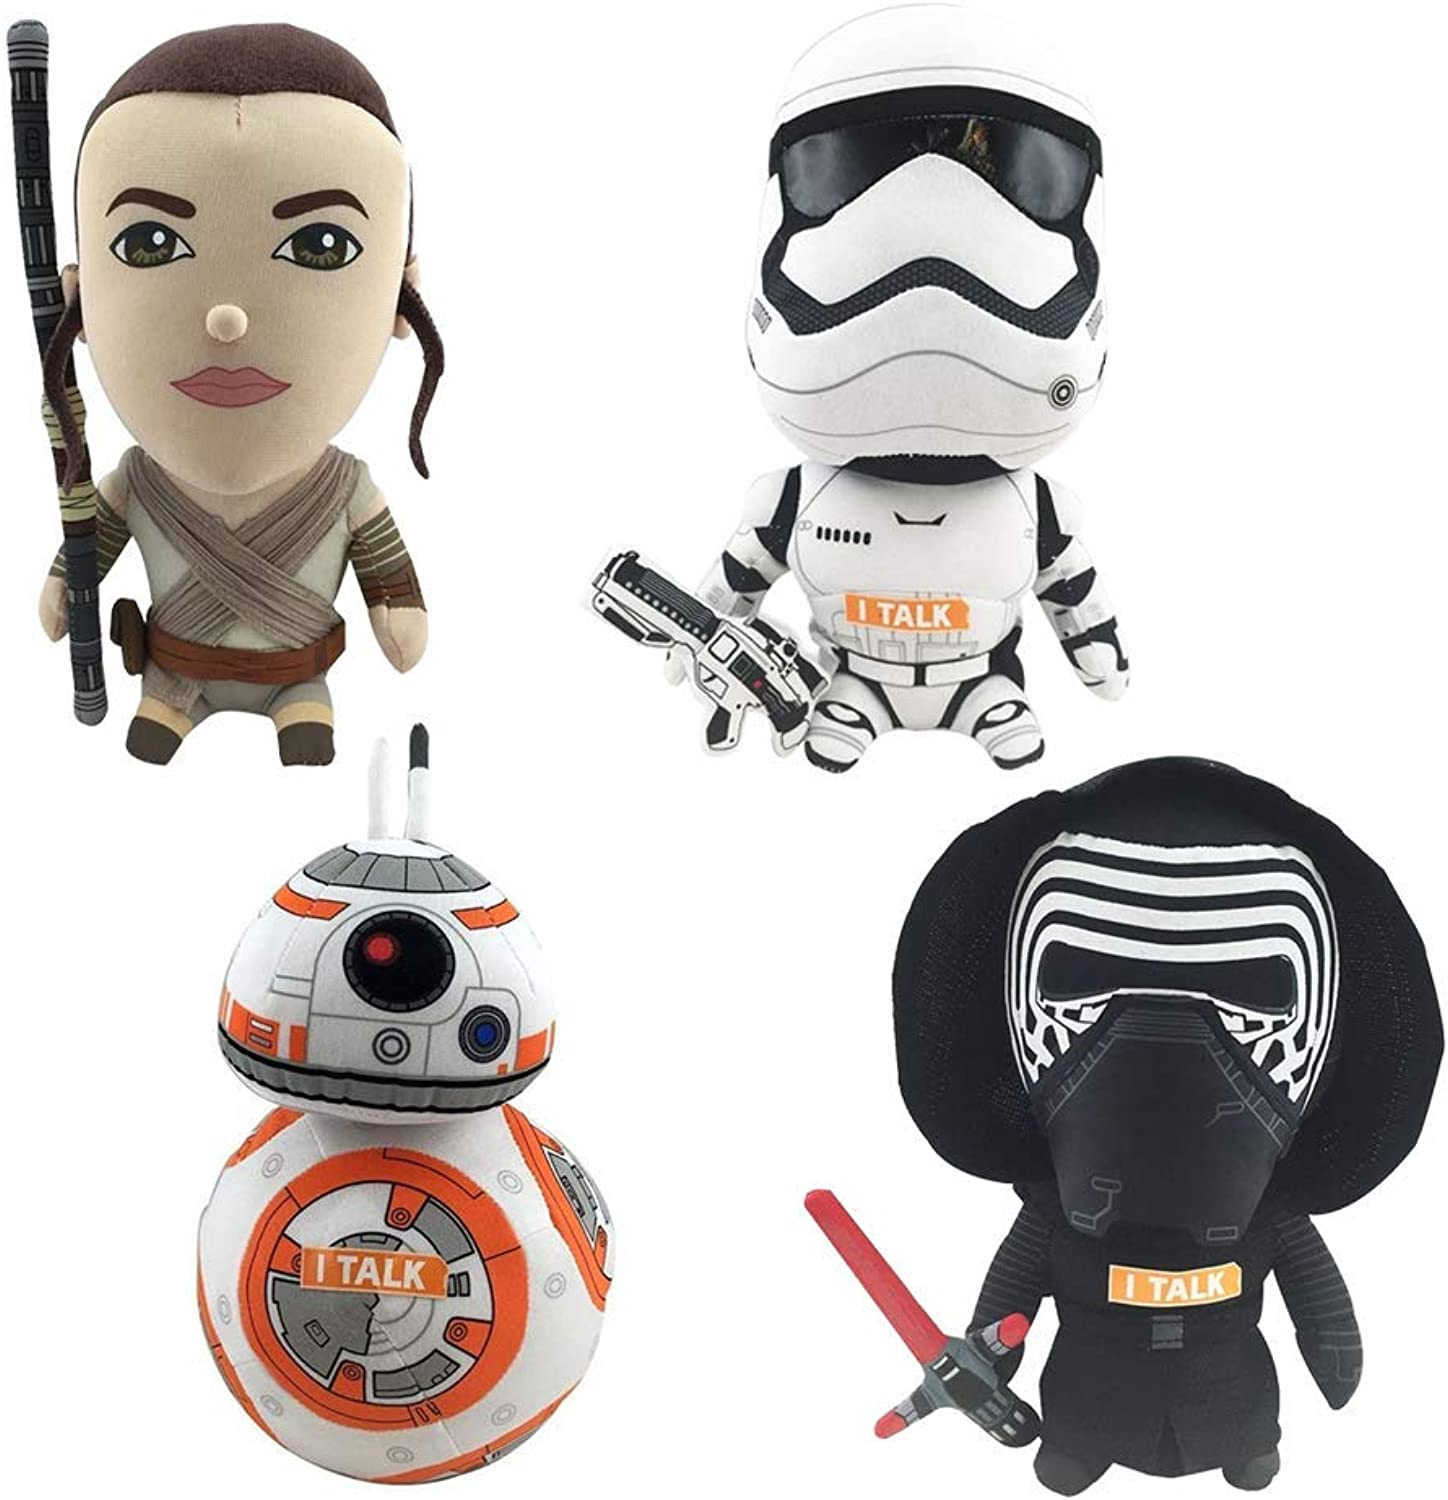 garantizado Juguetenk Estrella Wars 9  Talking Plush Bundle Set of of of 4  compras de moda online